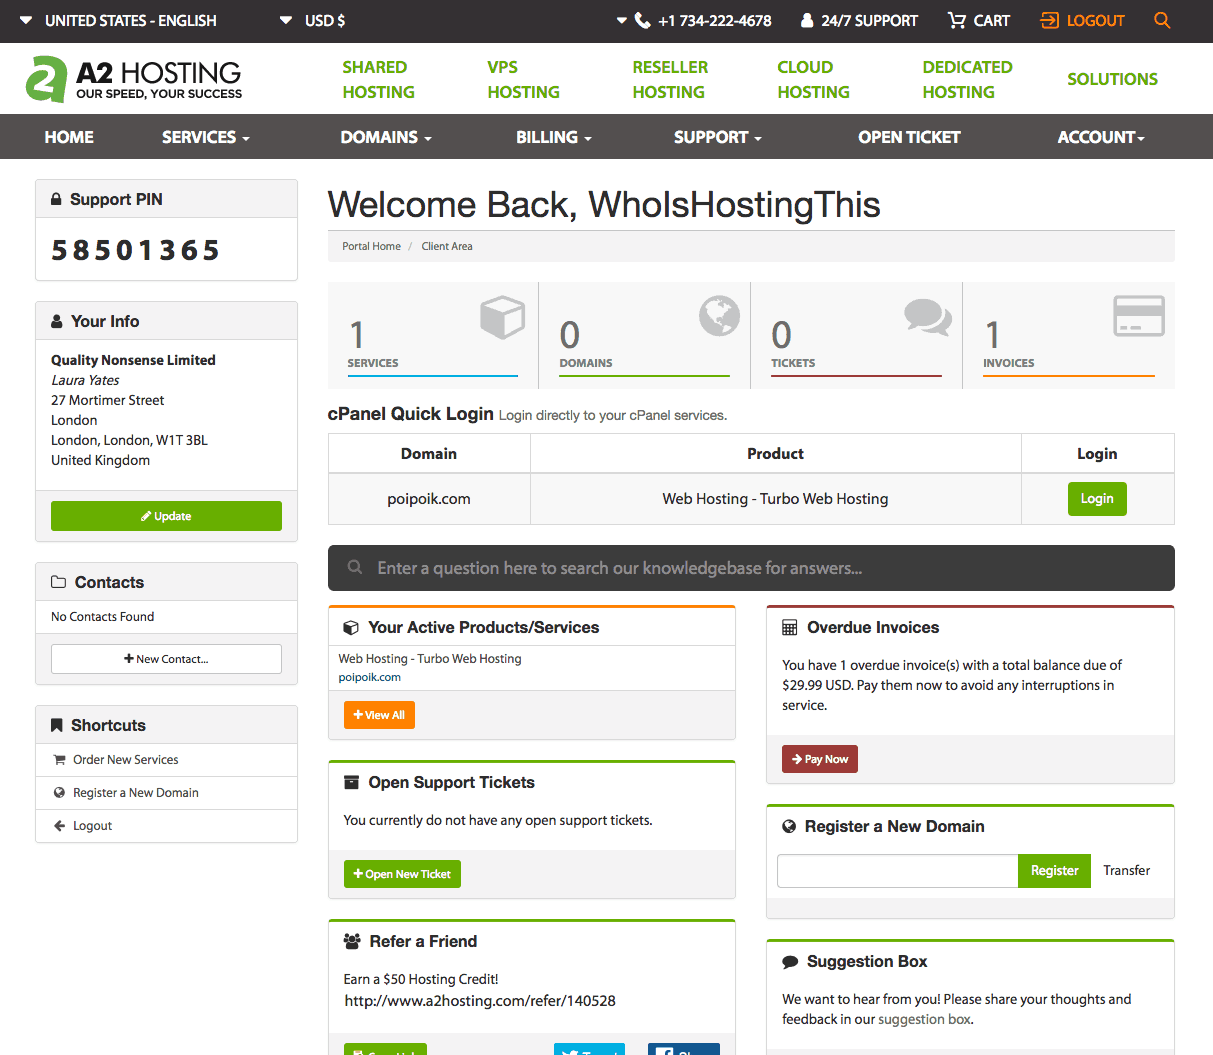 Linux hosting with A2 Hosting via WhoIsHostingThis.com